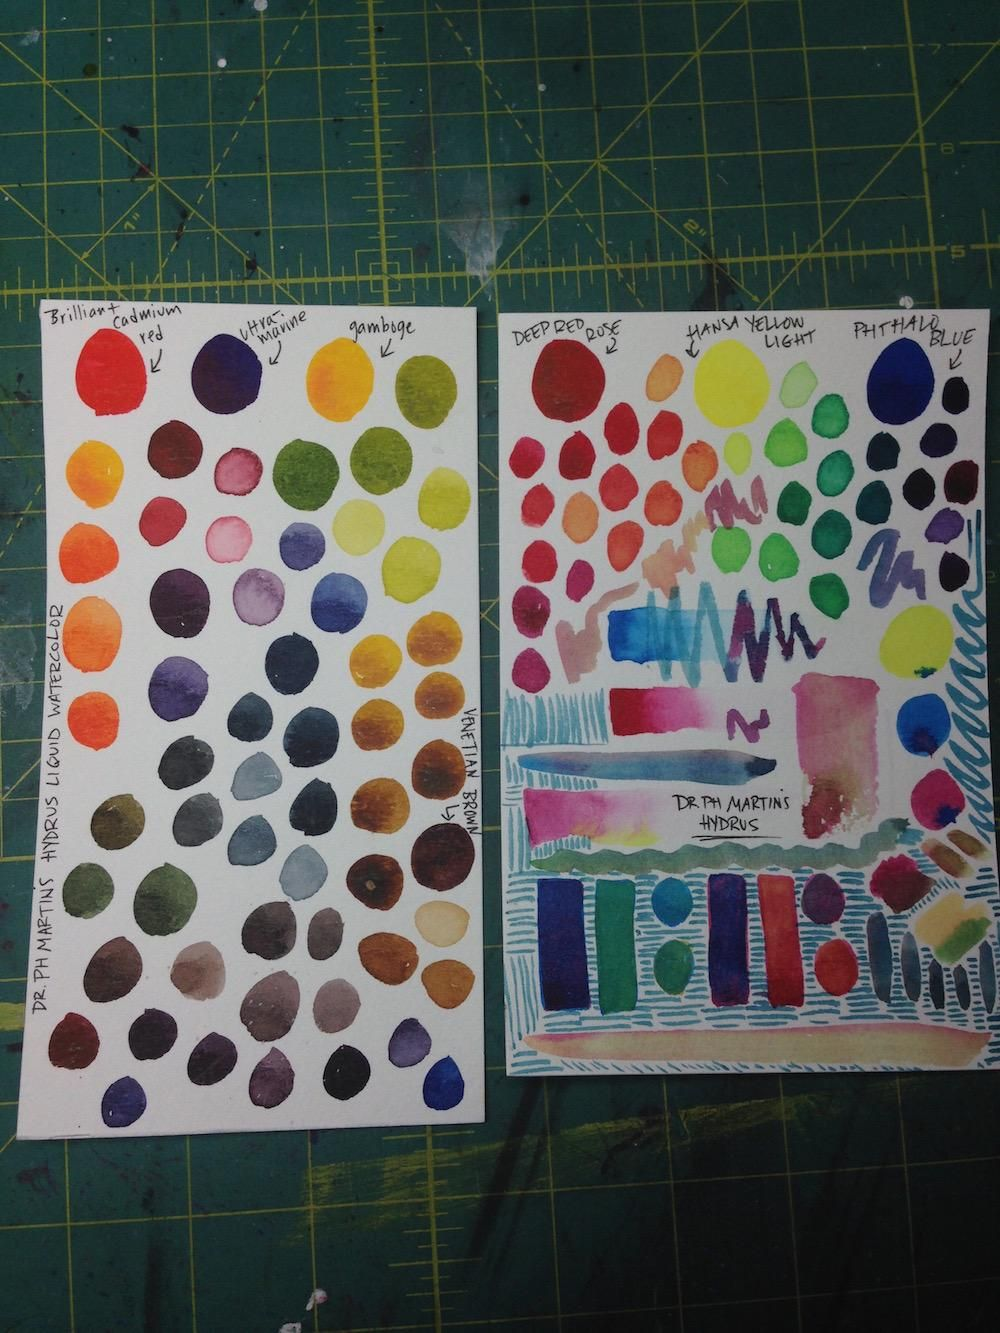 Mixing Watercolors - image 2 - student project